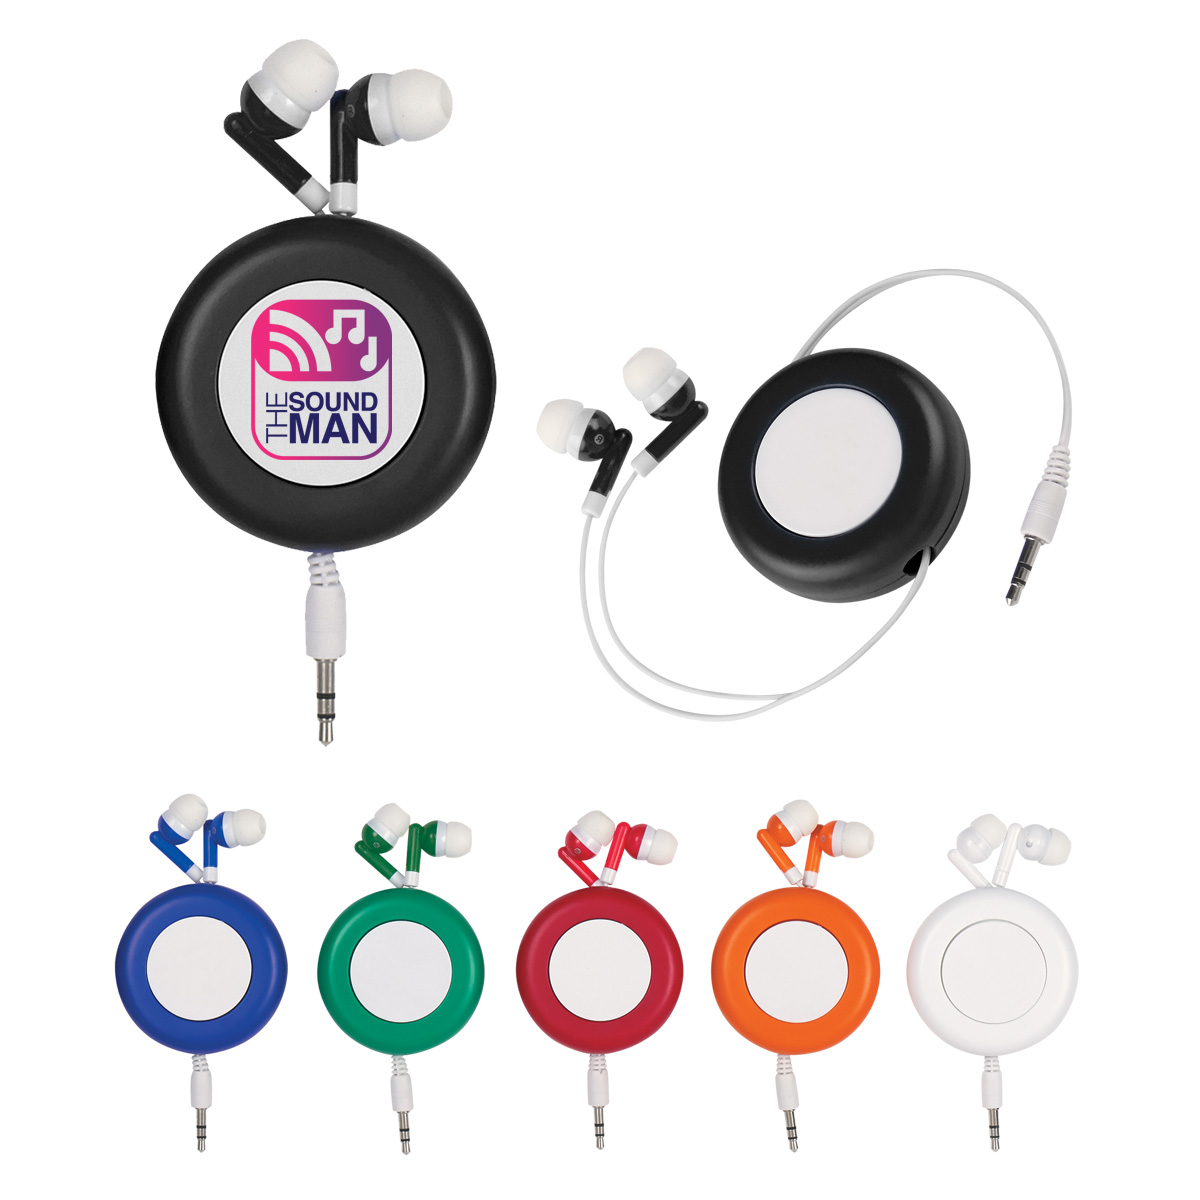 Earbuds retractable case - earbuds retractable